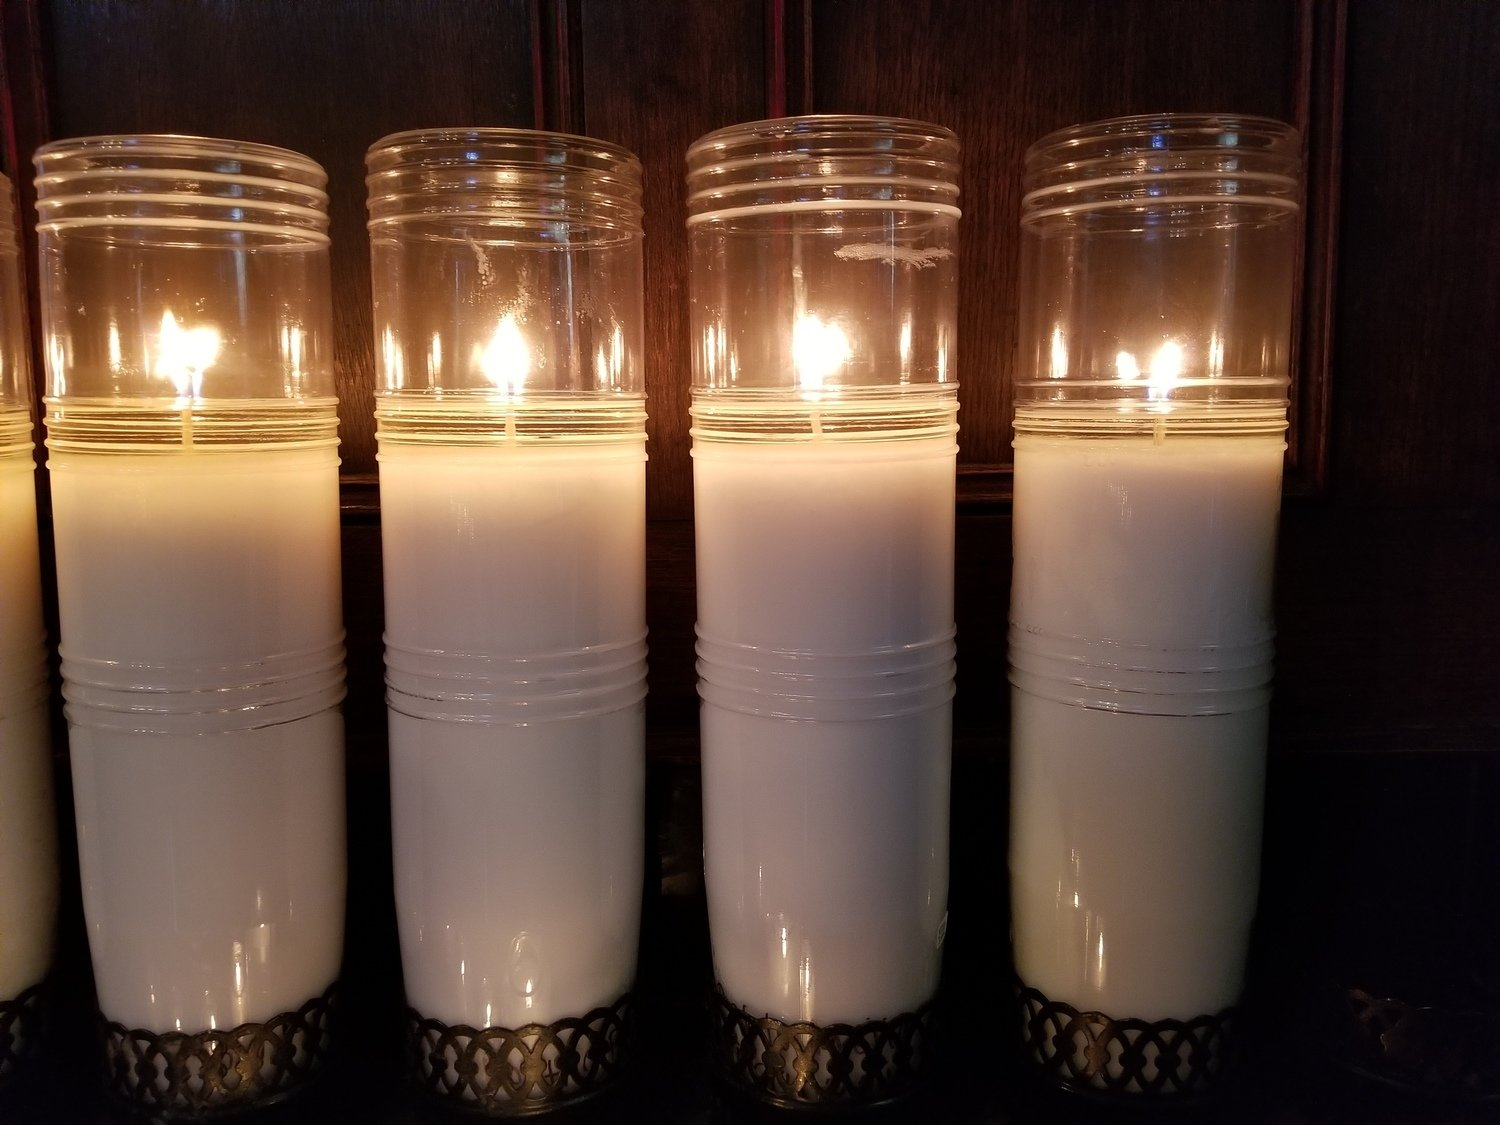 Votive Candles - 14 to 15 Day